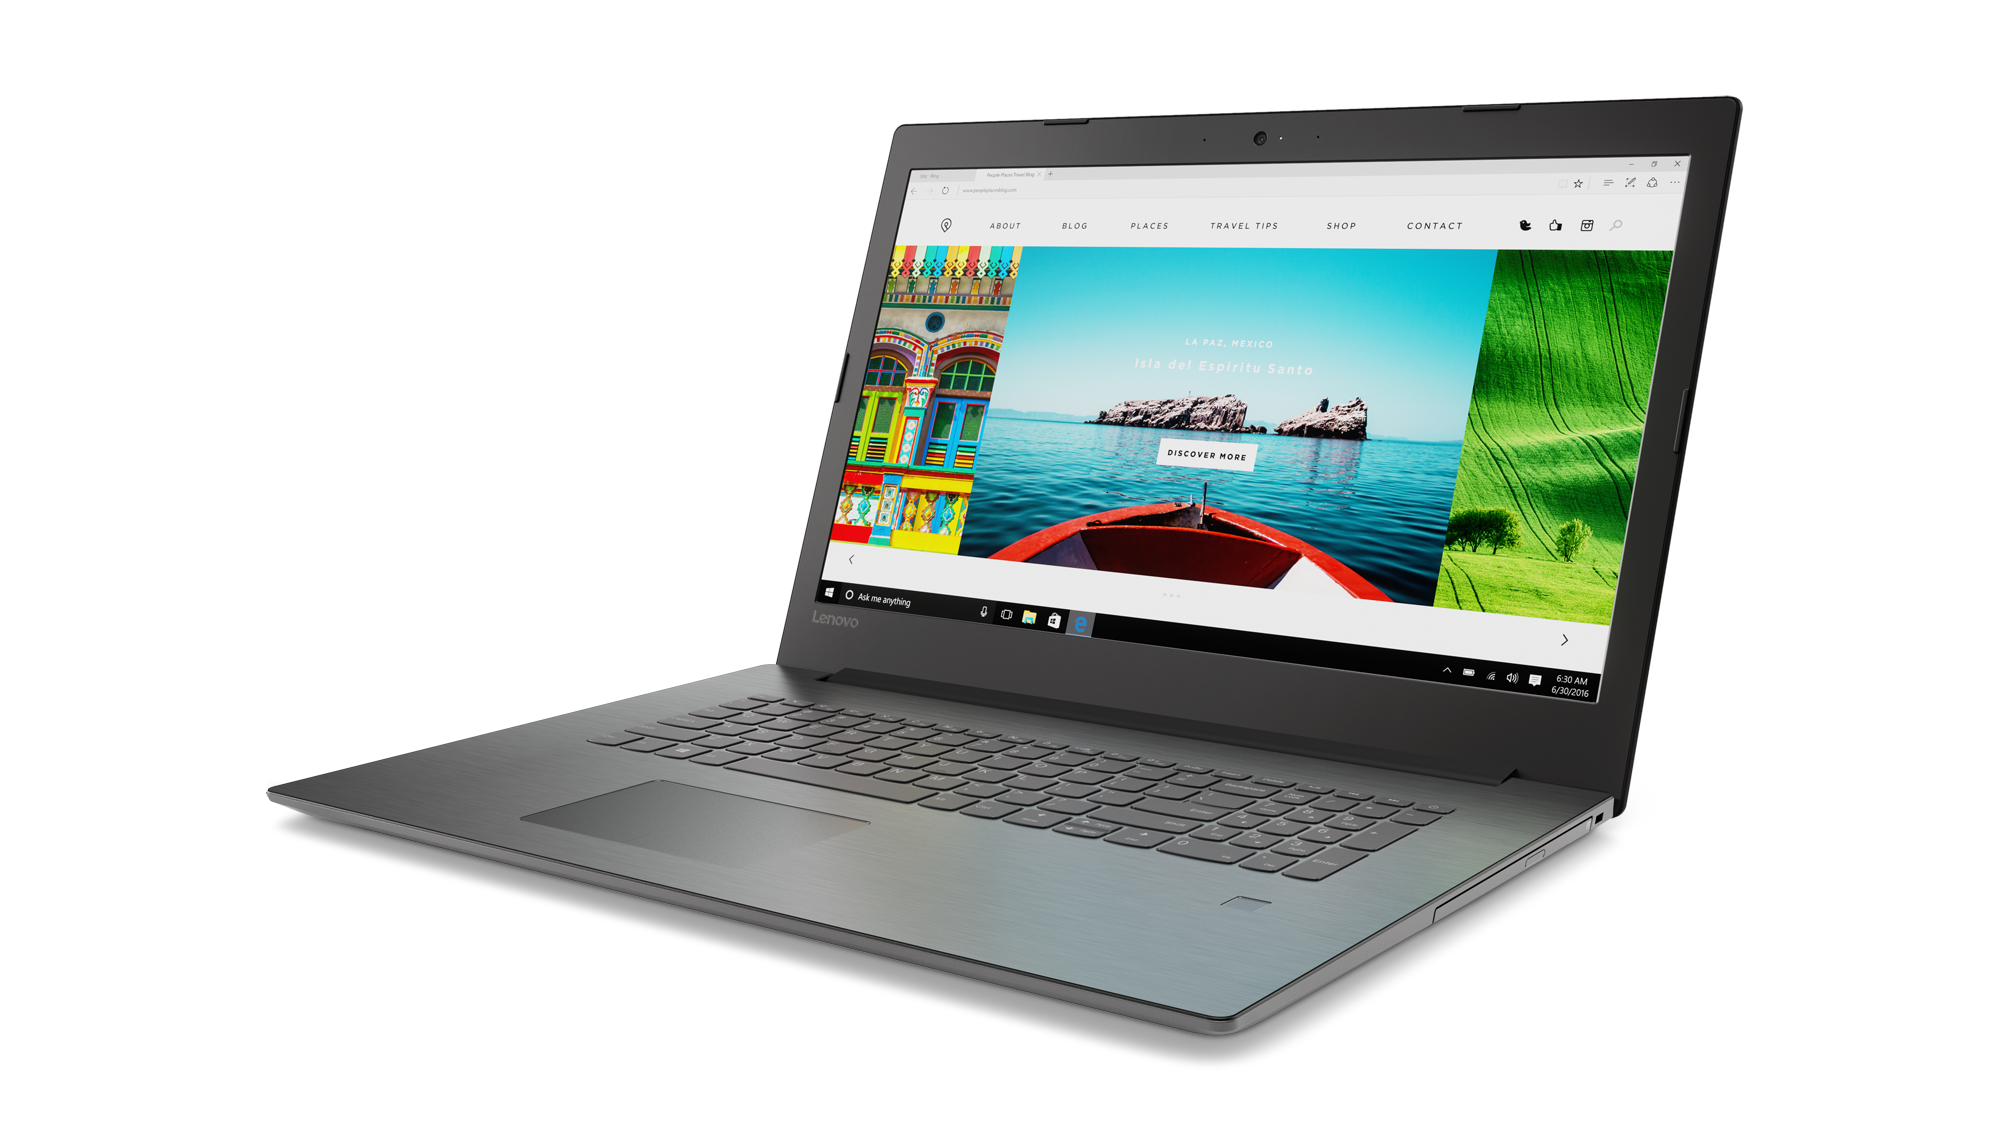 "Lenovo IdeaPad 320-17AST AMD A6-9220 2,50GHz/8GB/HDD 1TB/17,3"" HD+/AG/Radeon 2GB/DVD-RW/WIN10 černá 80XW000HCK"